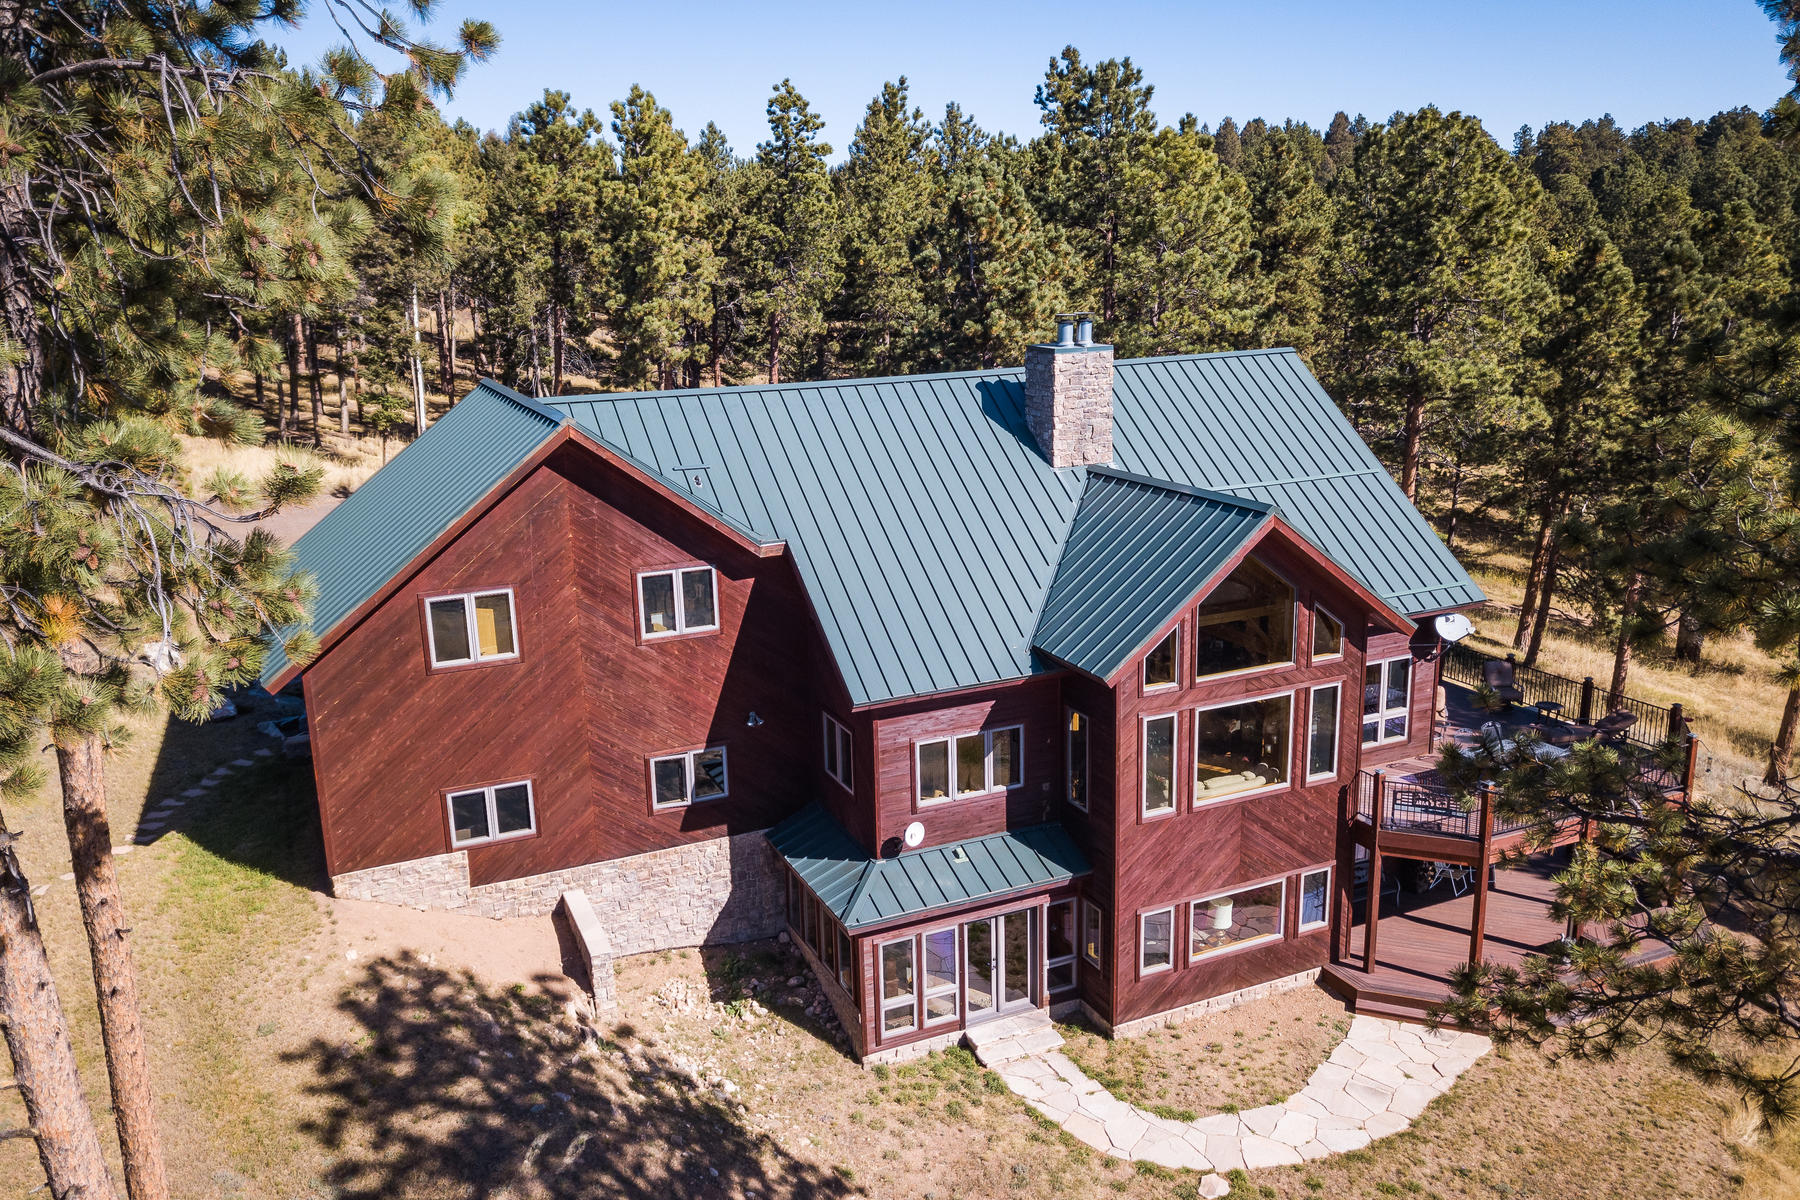 Single Family Homes for Active at The epitome of Colorado living with an undeniable reverence for nature. 25987 Richmond Hill Road Conifer, Colorado 80433 United States